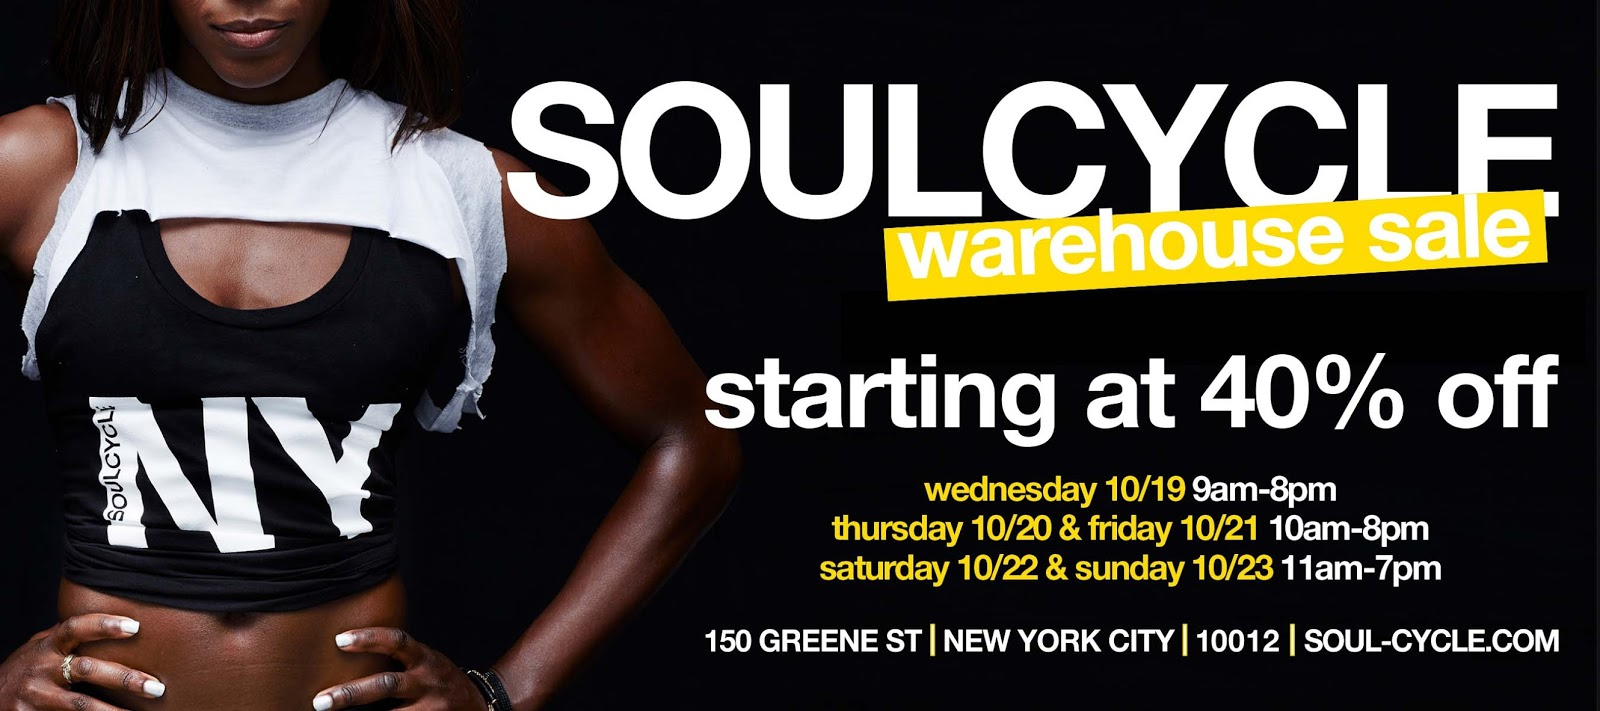 fashionably petite: SoulCycle Warehouse Sale - 10/19 - 10/23/16